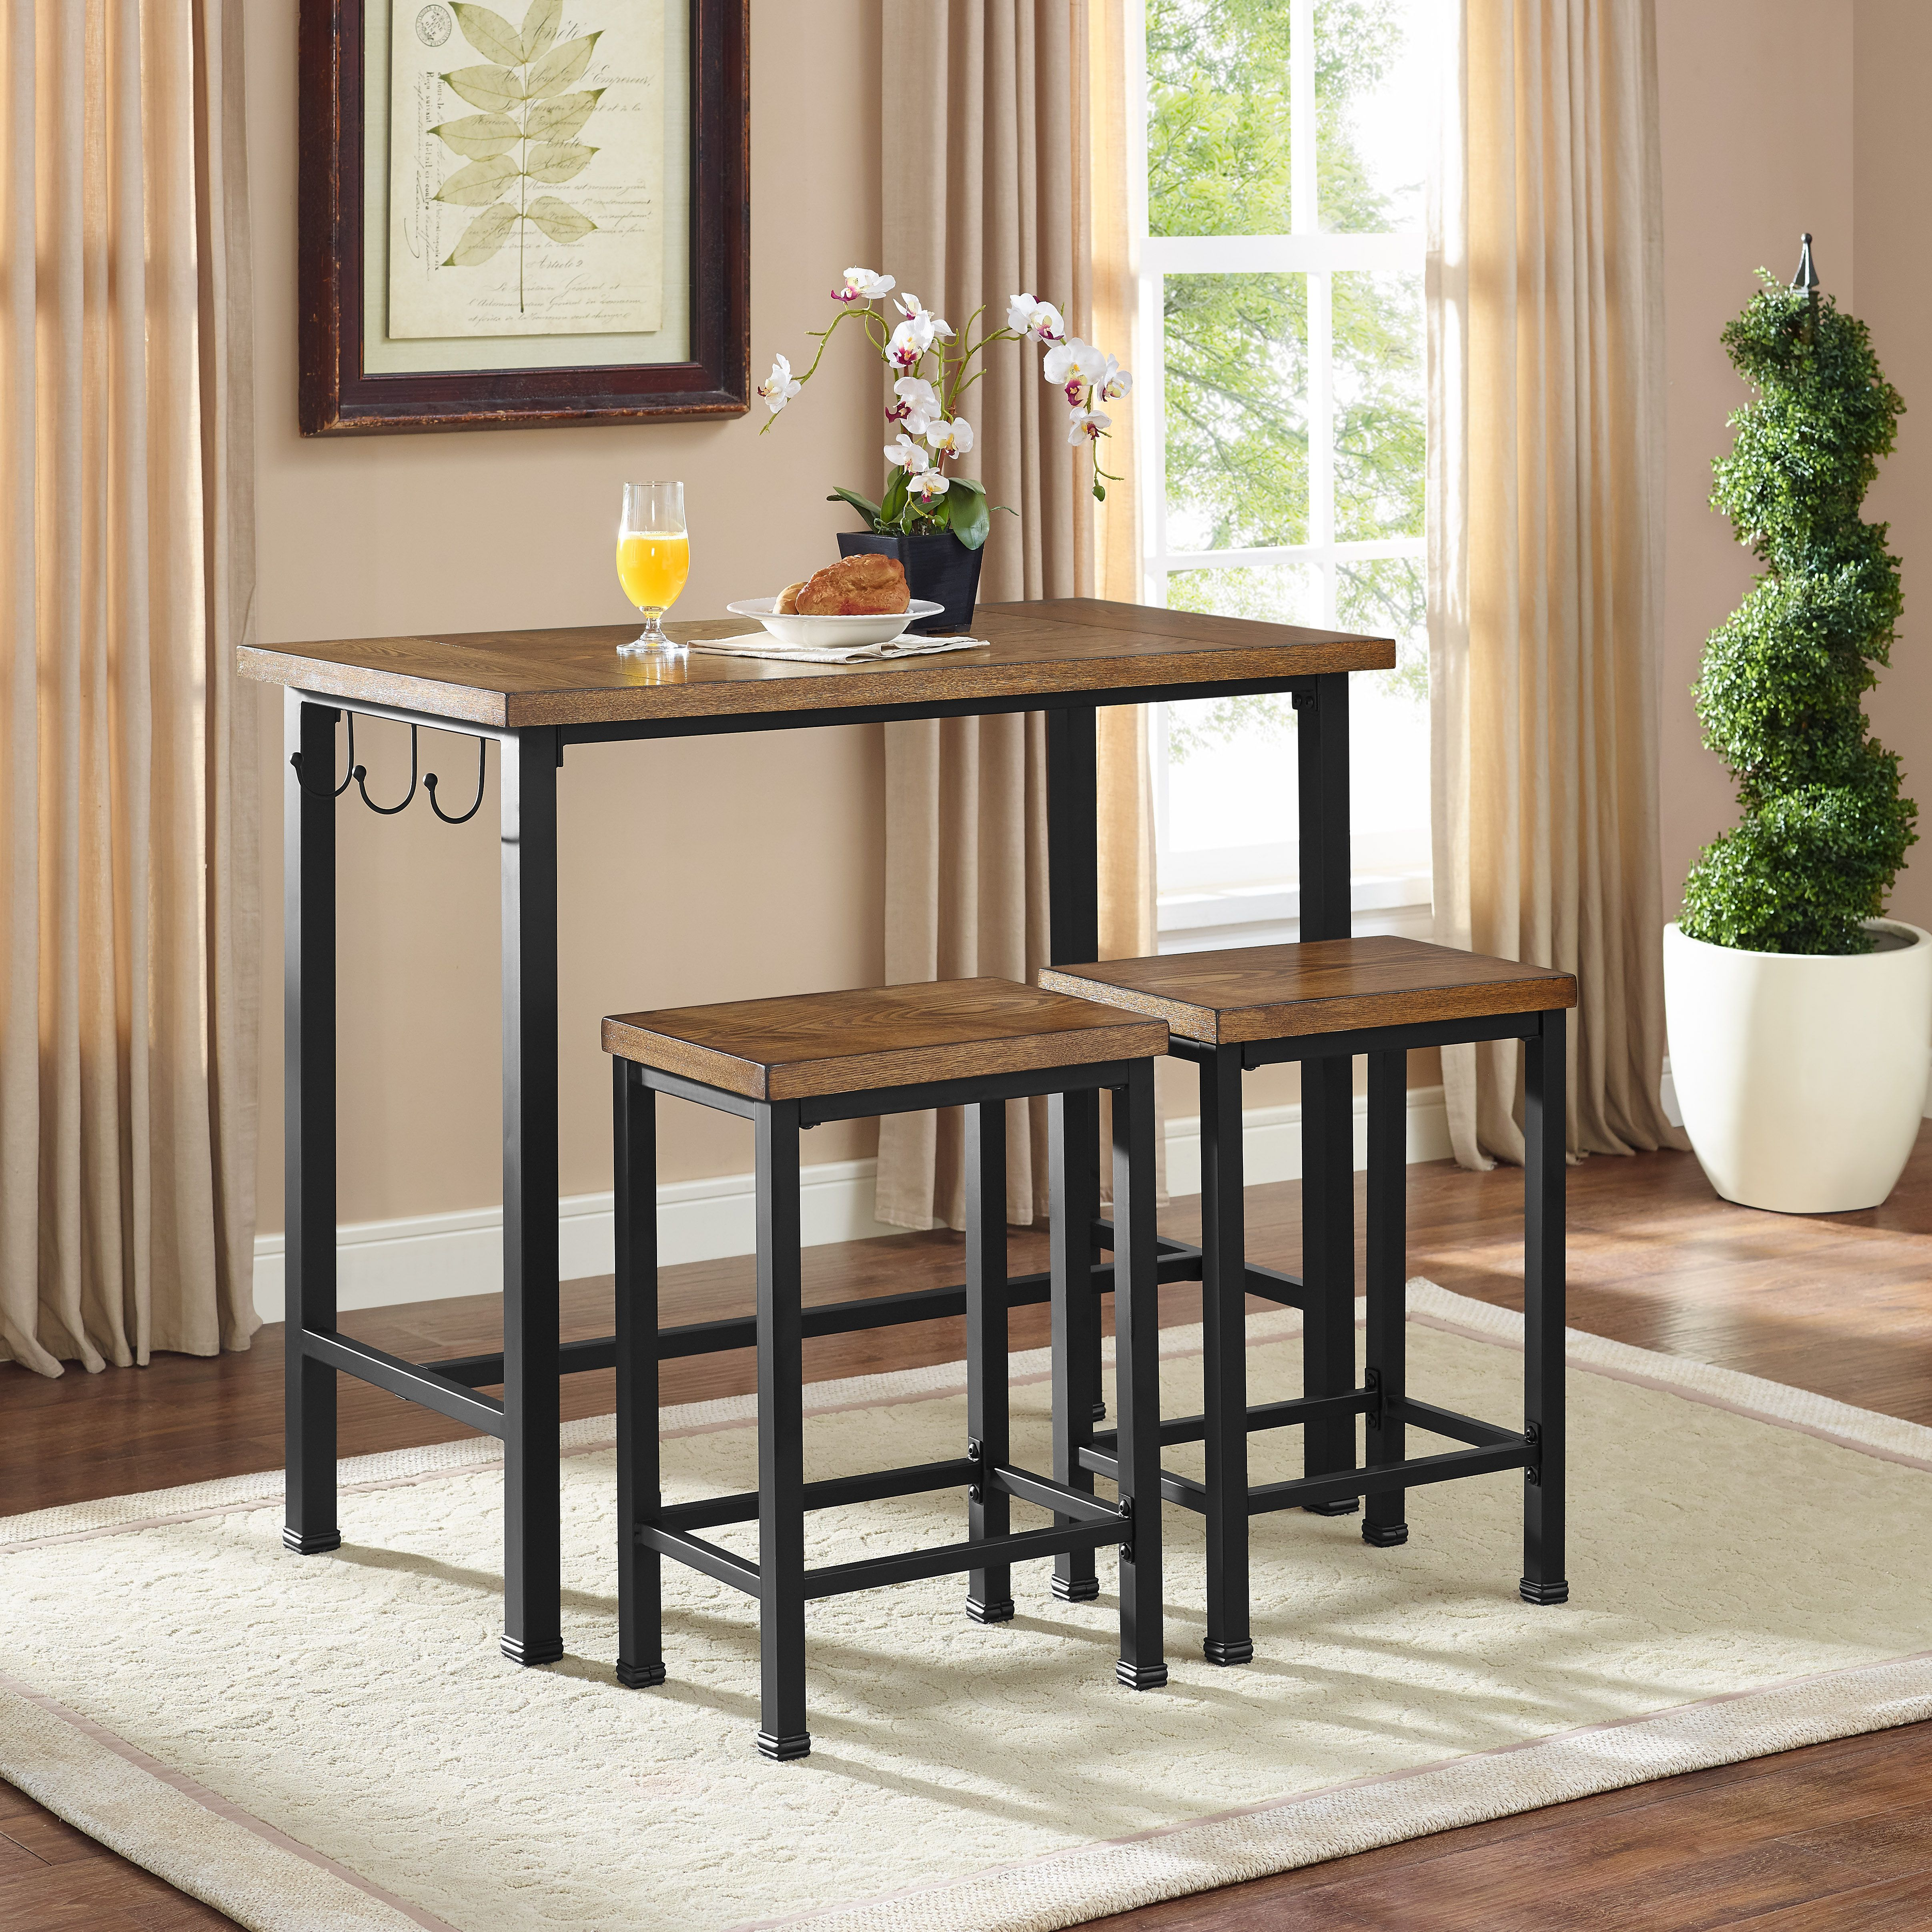 Good Maximize Your Space With A 3 Pc. Metal And Wood Pub Set By Linon